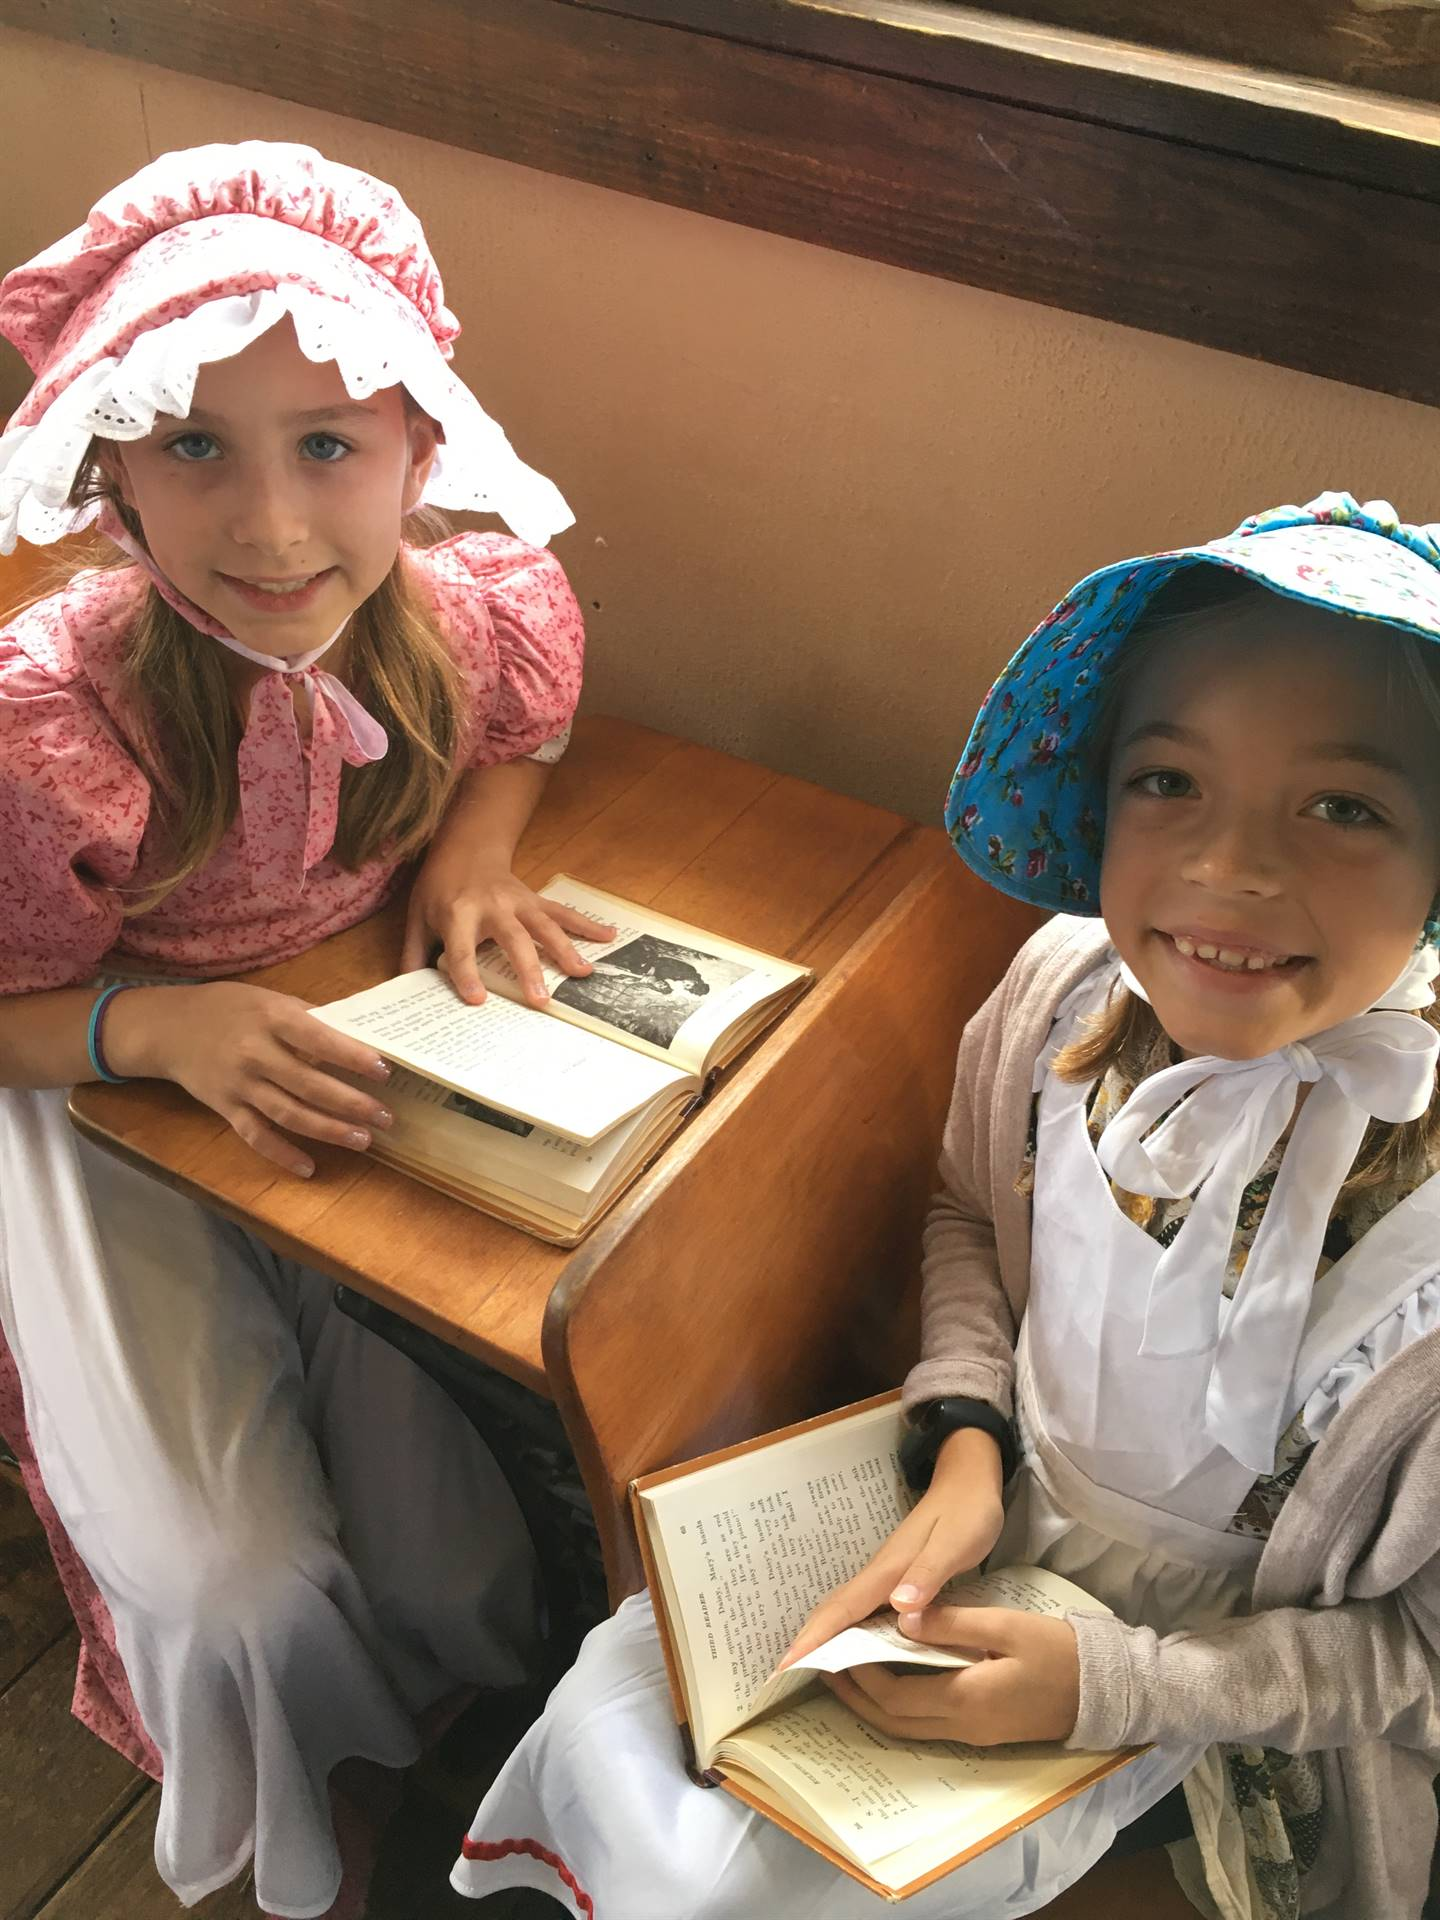 Children at a One Room Schoolhouse